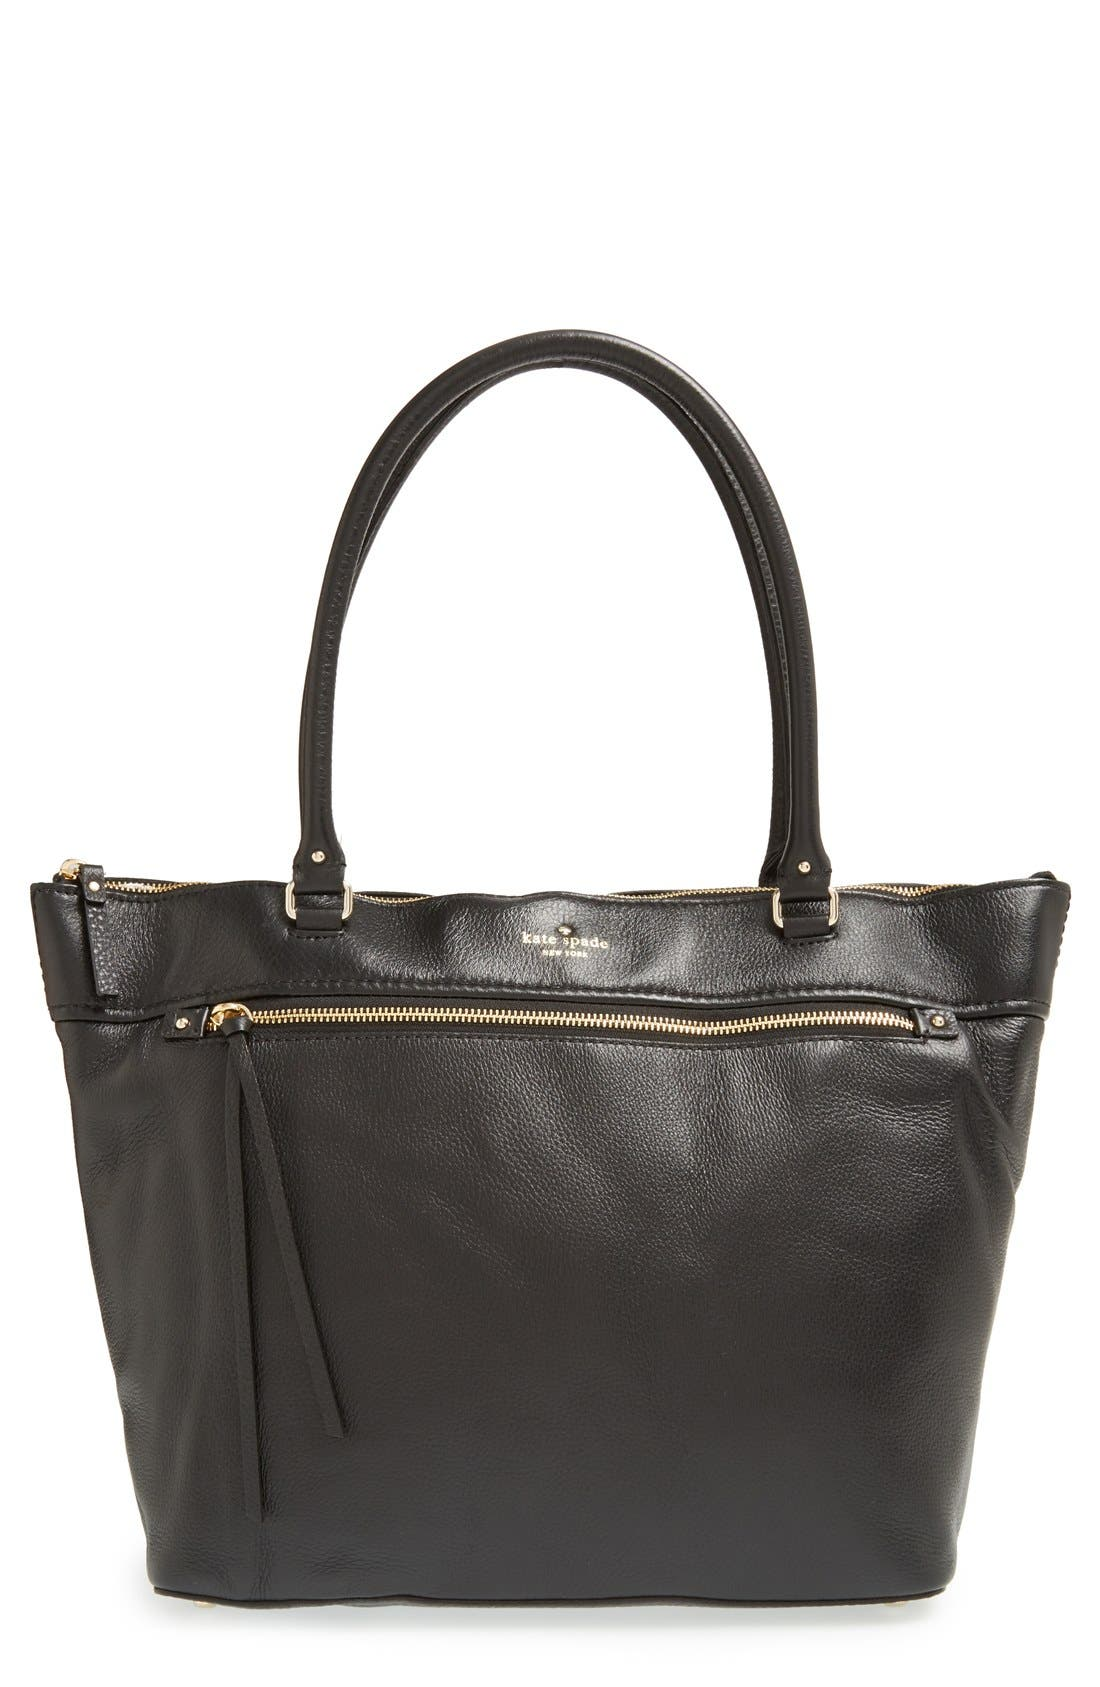 Main Image - kate spade new york 'cobble hill - gina' leather tote